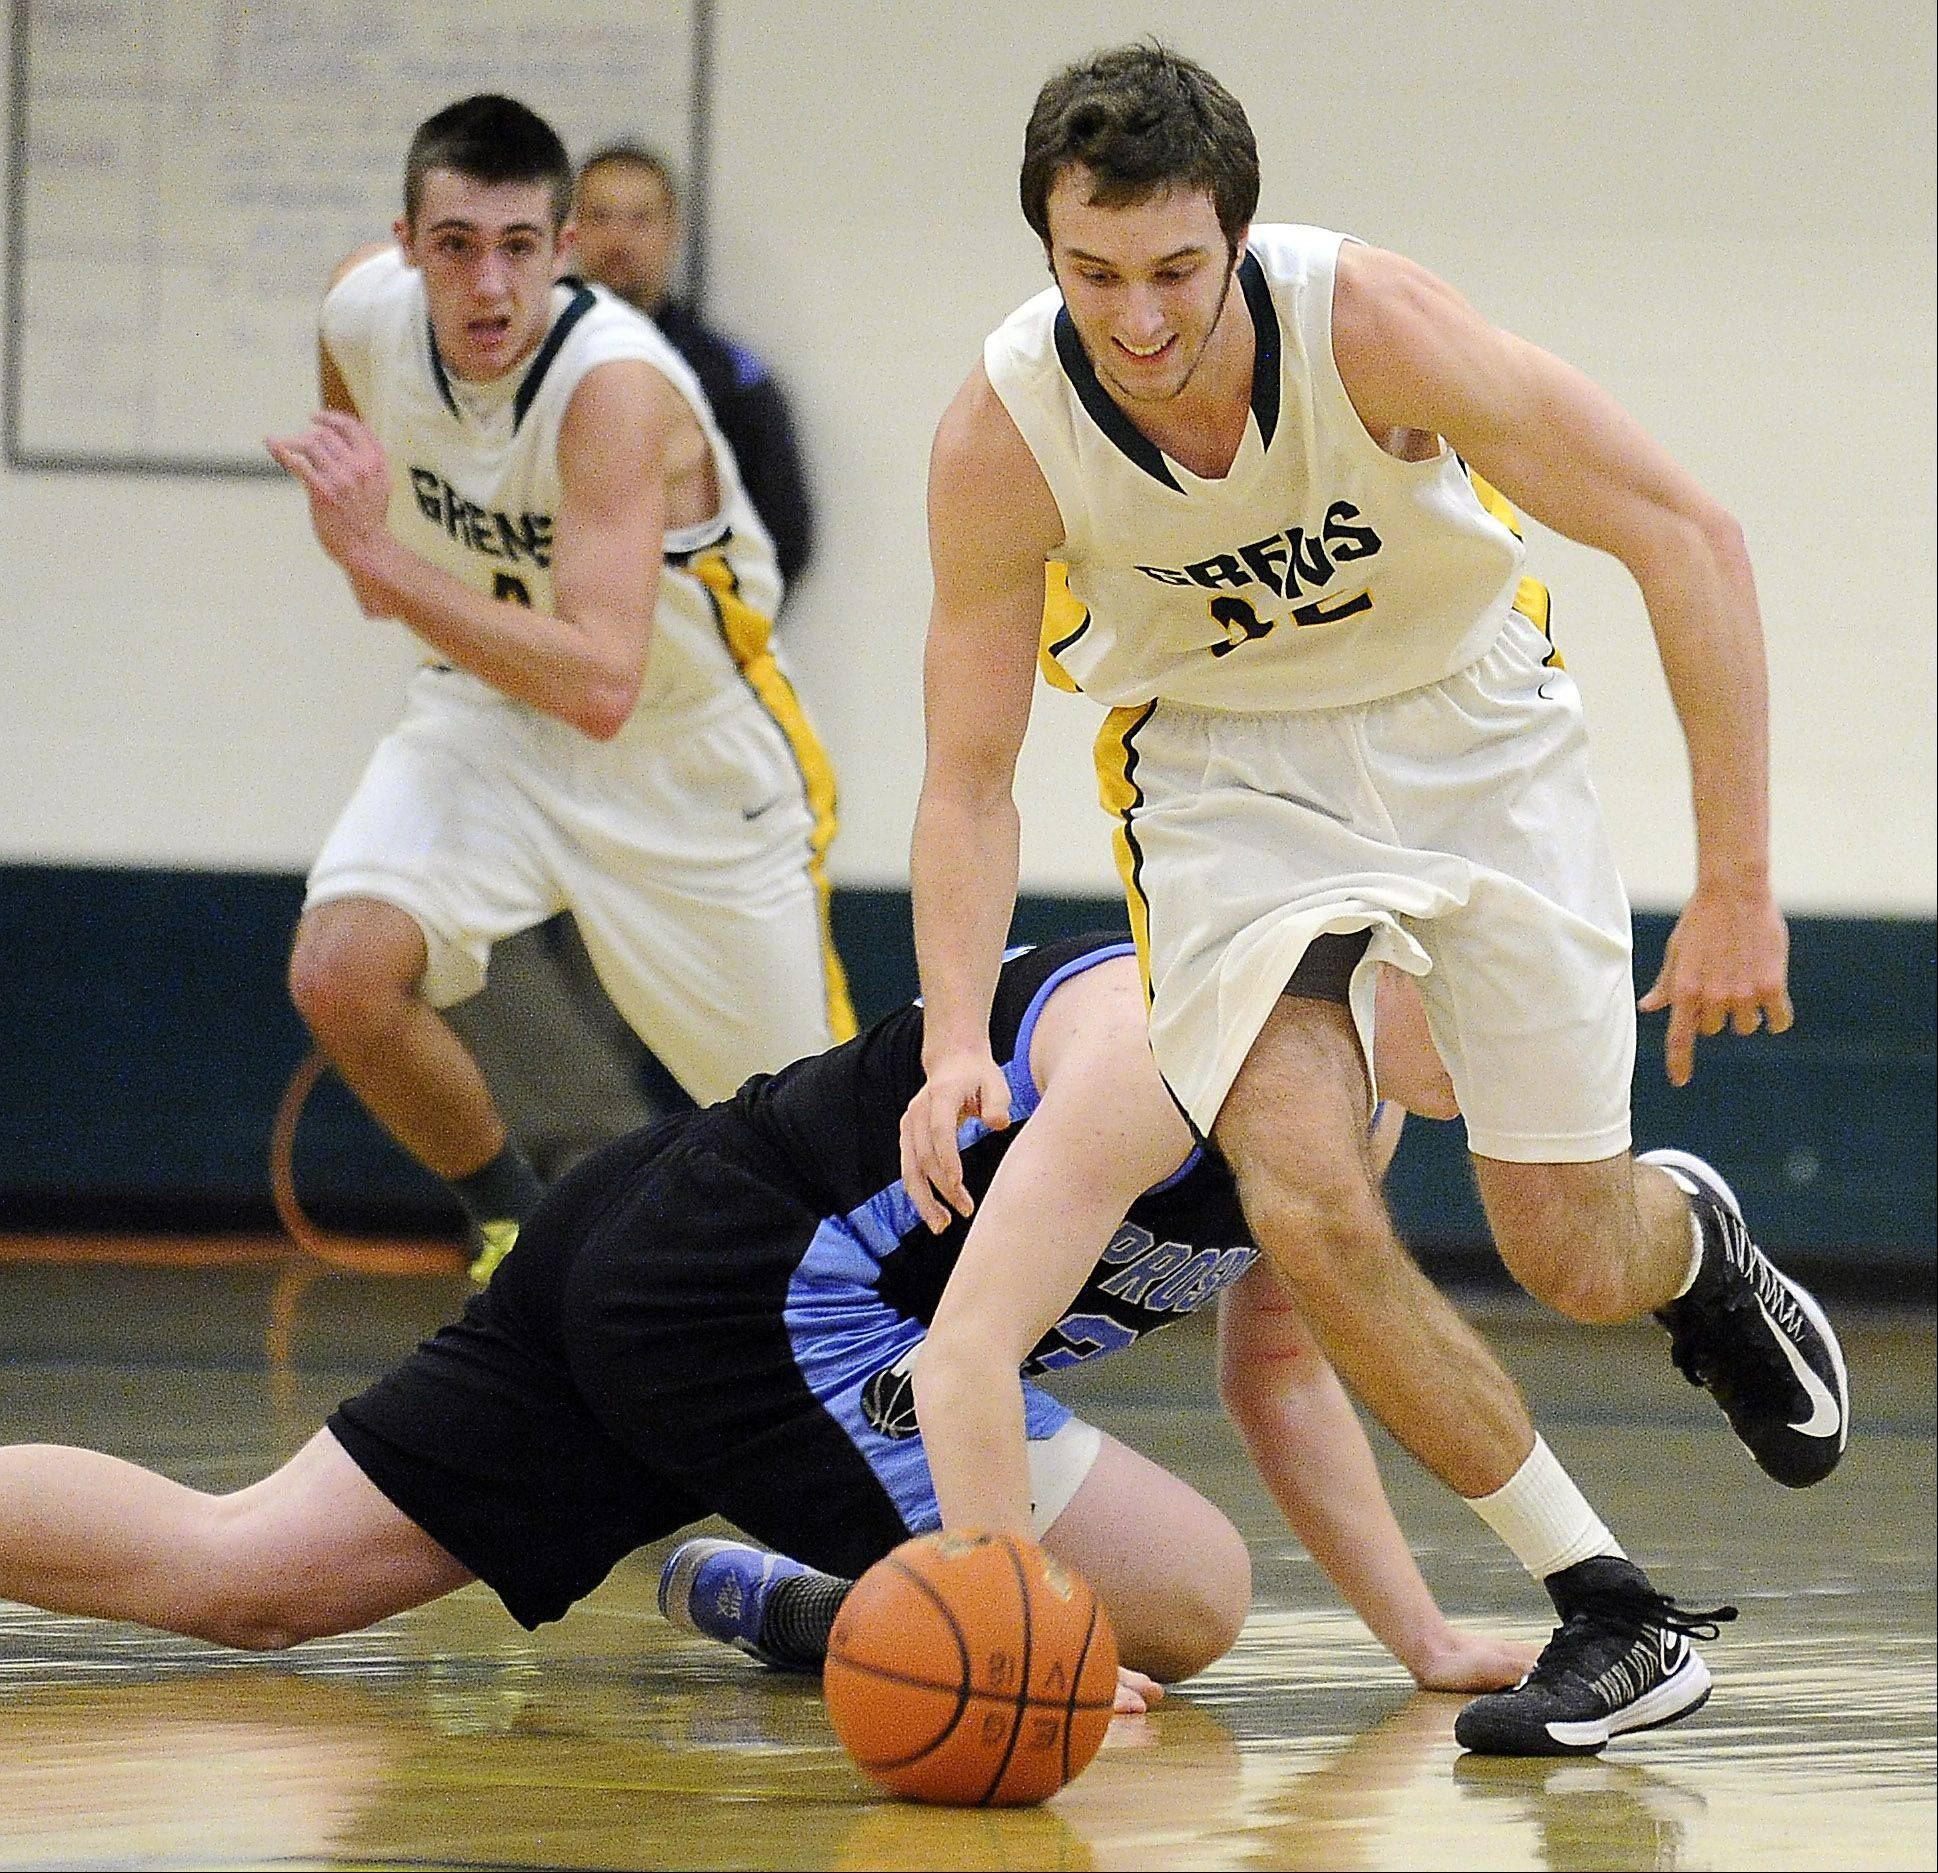 Elk Grove's Brian Kelly gets a steal as Prospect's Welby Malczewski defends, then starts toward the basket at Elk Grove on Friday.